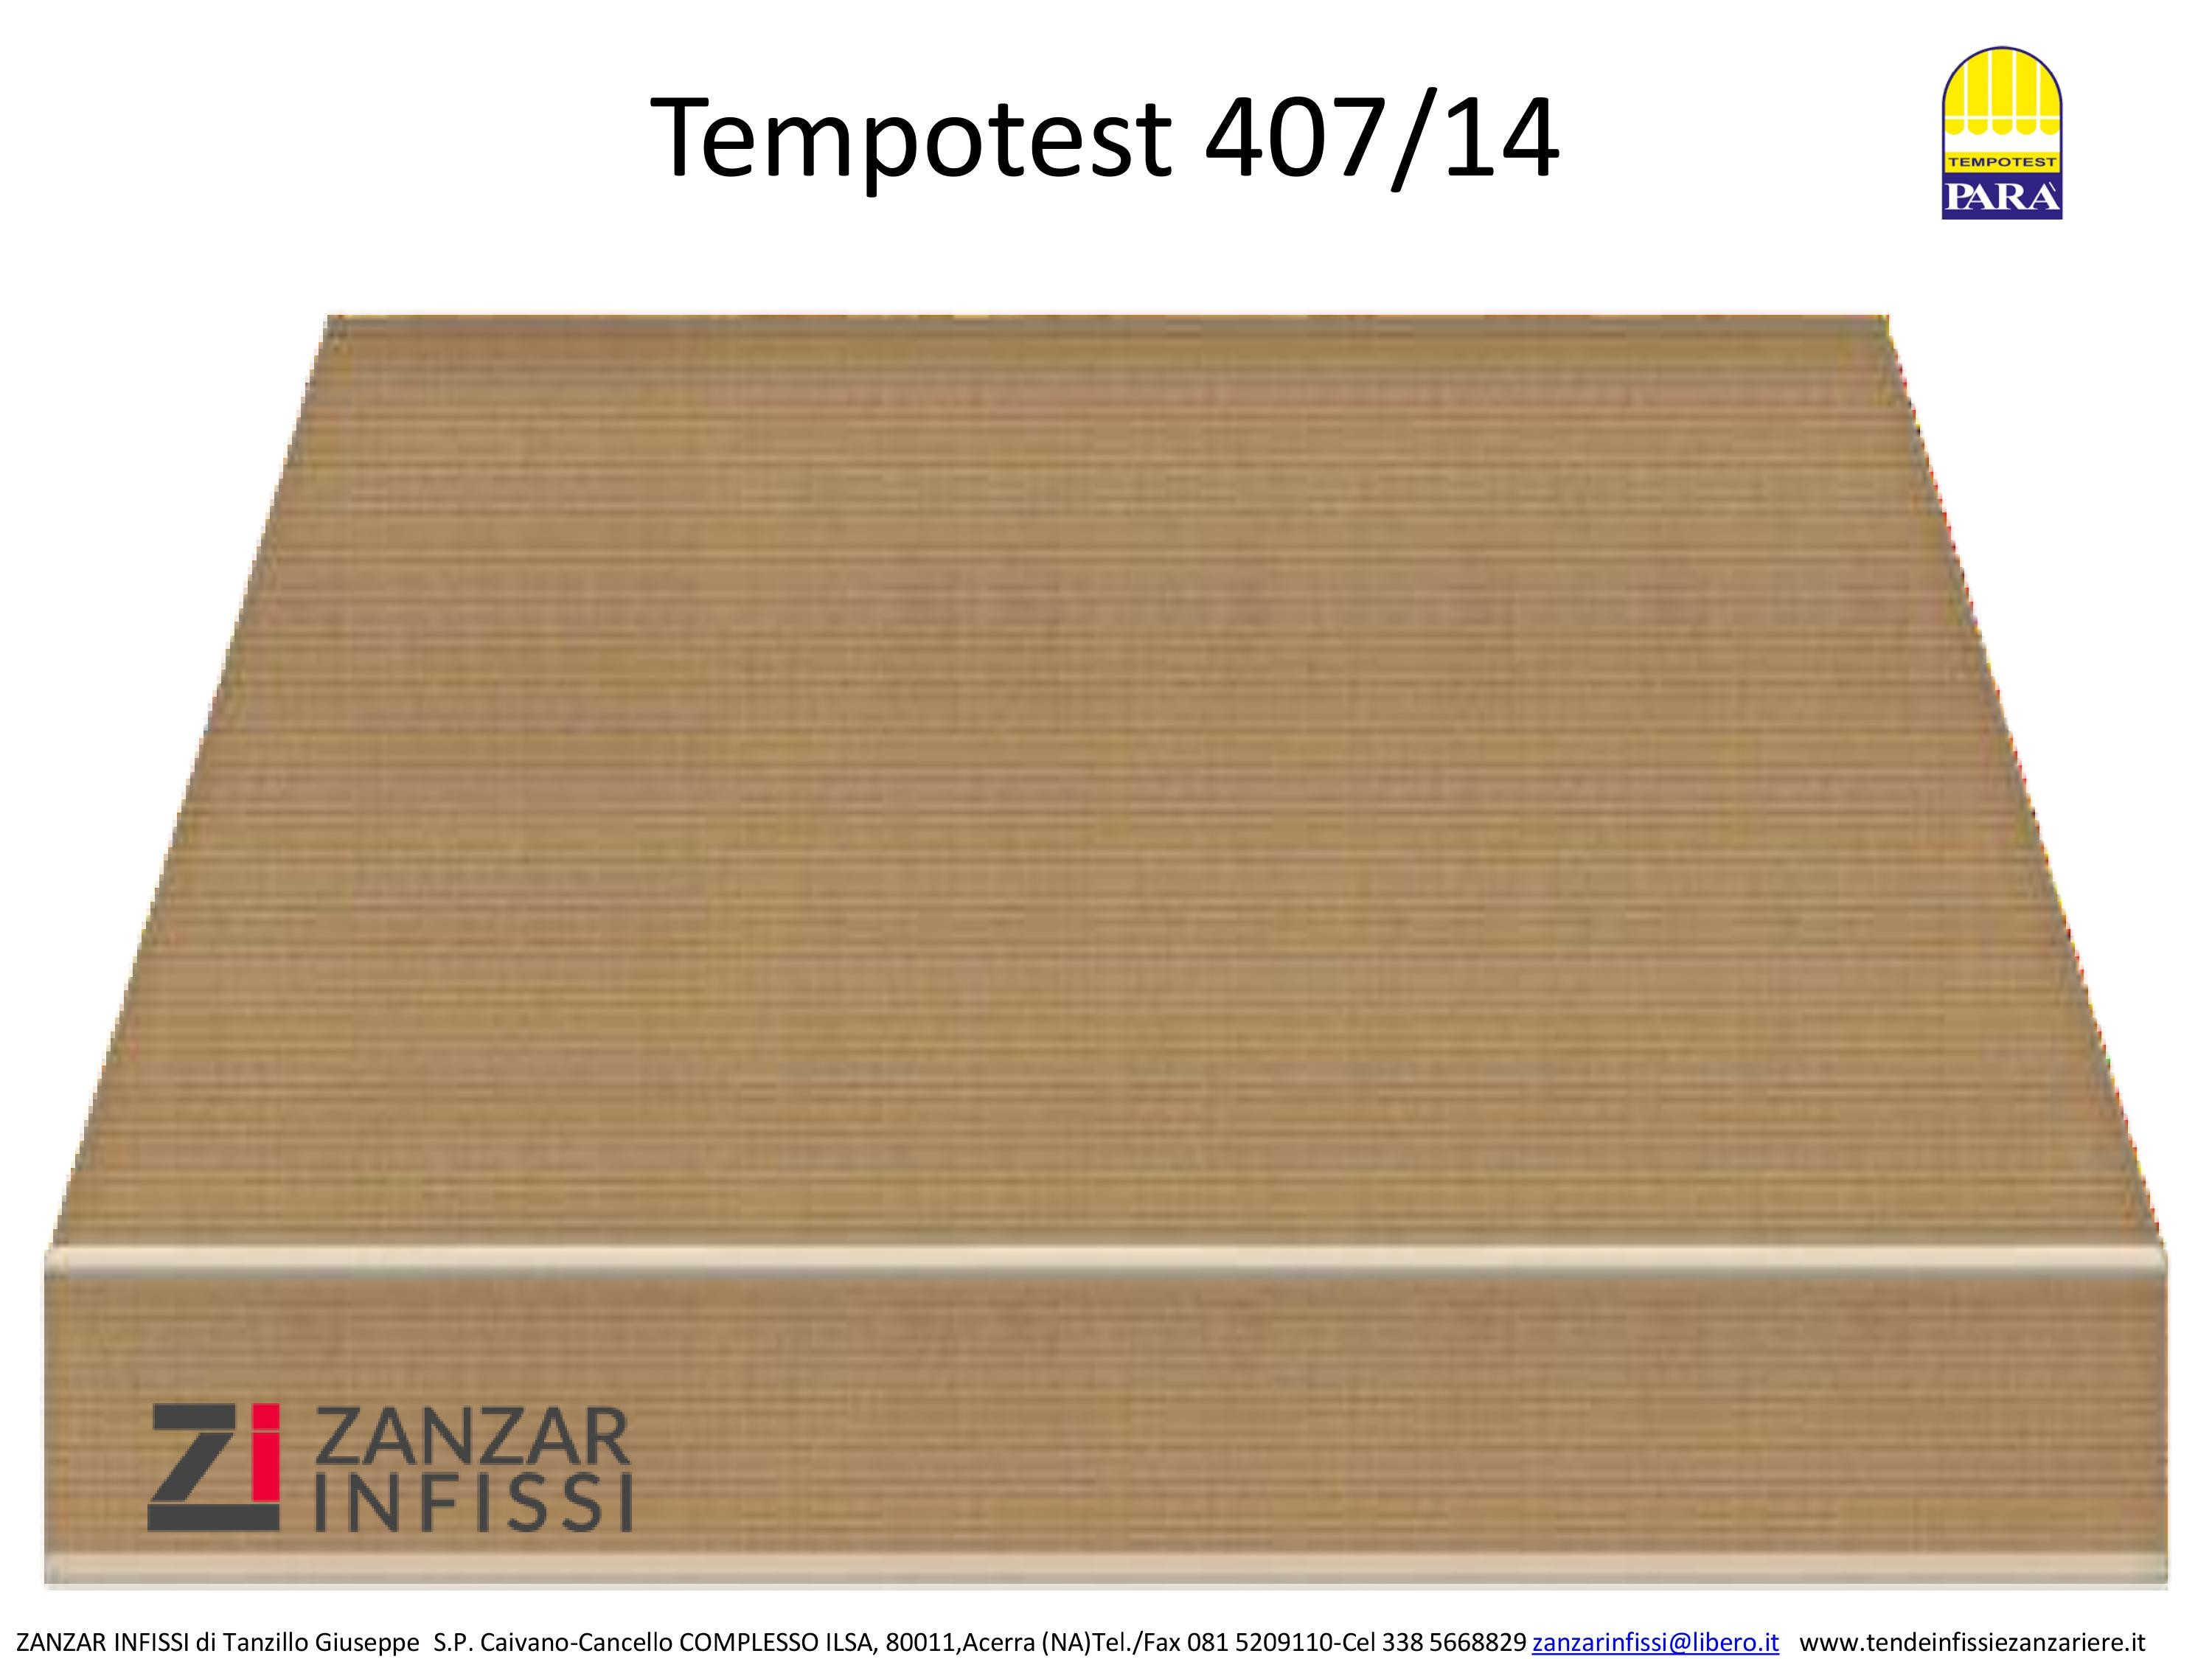 Tempotest 407/14